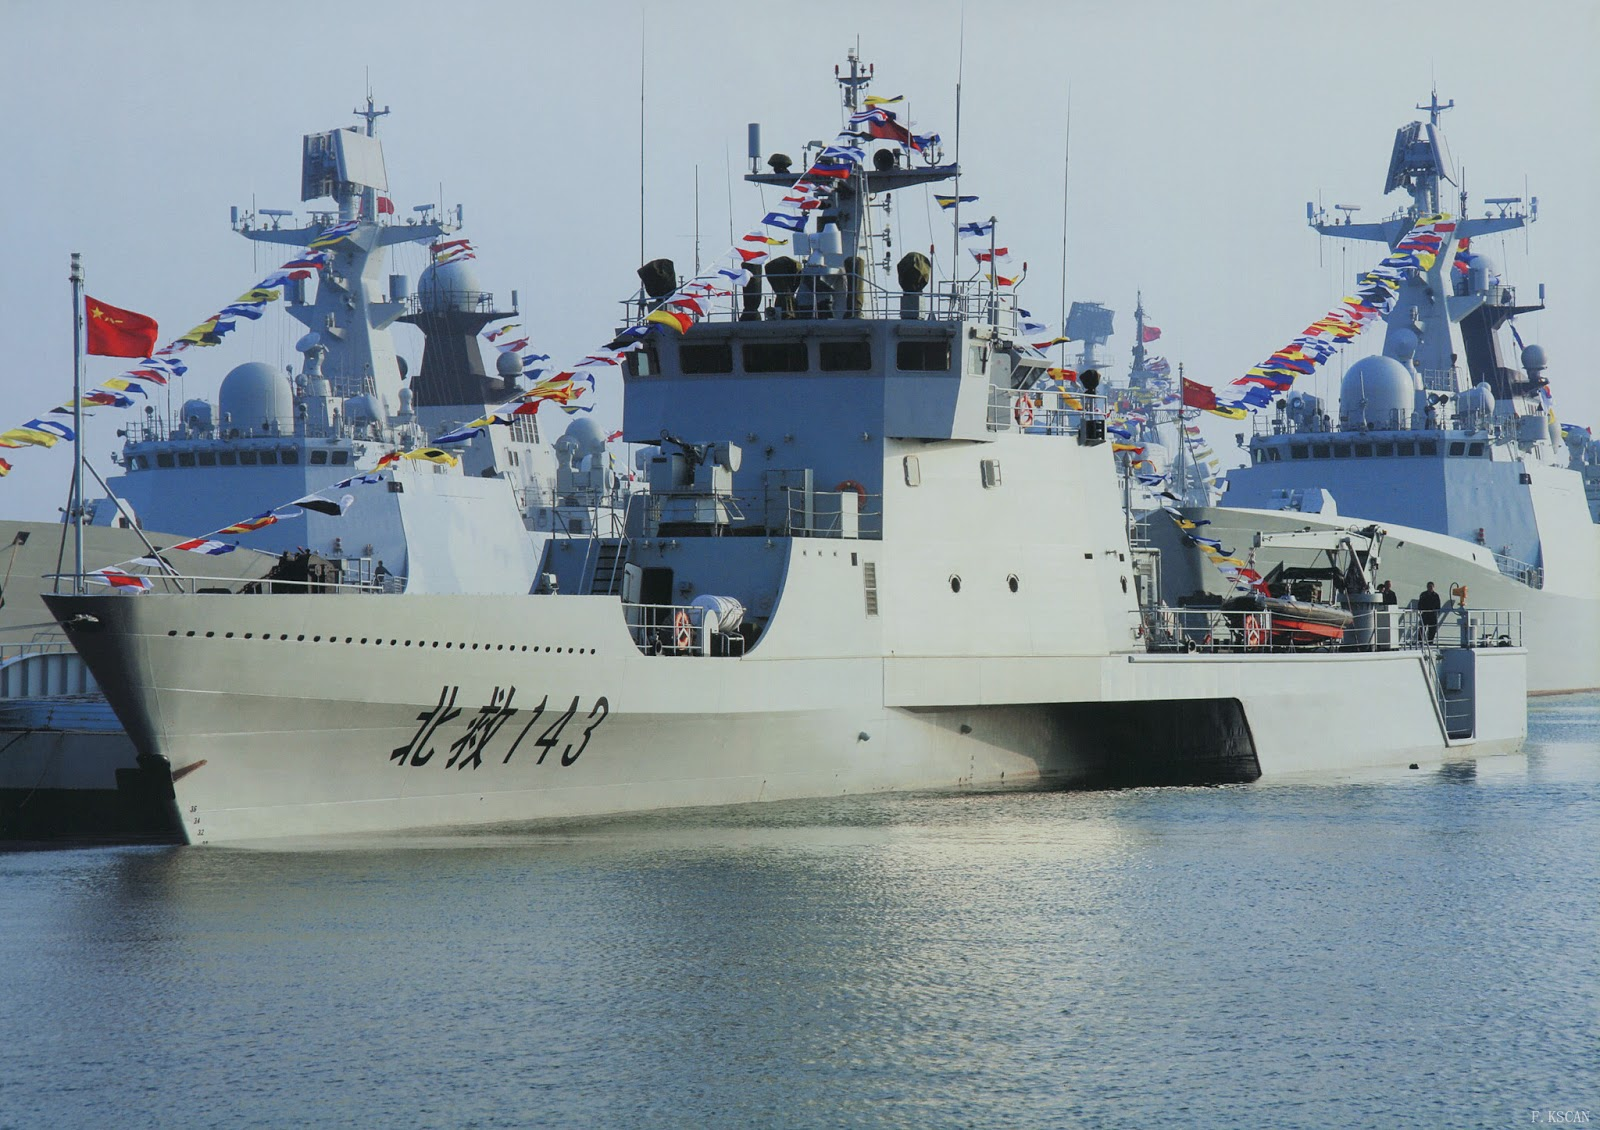 China Defense Blog: The mystery of PLAN's new trimaran boat